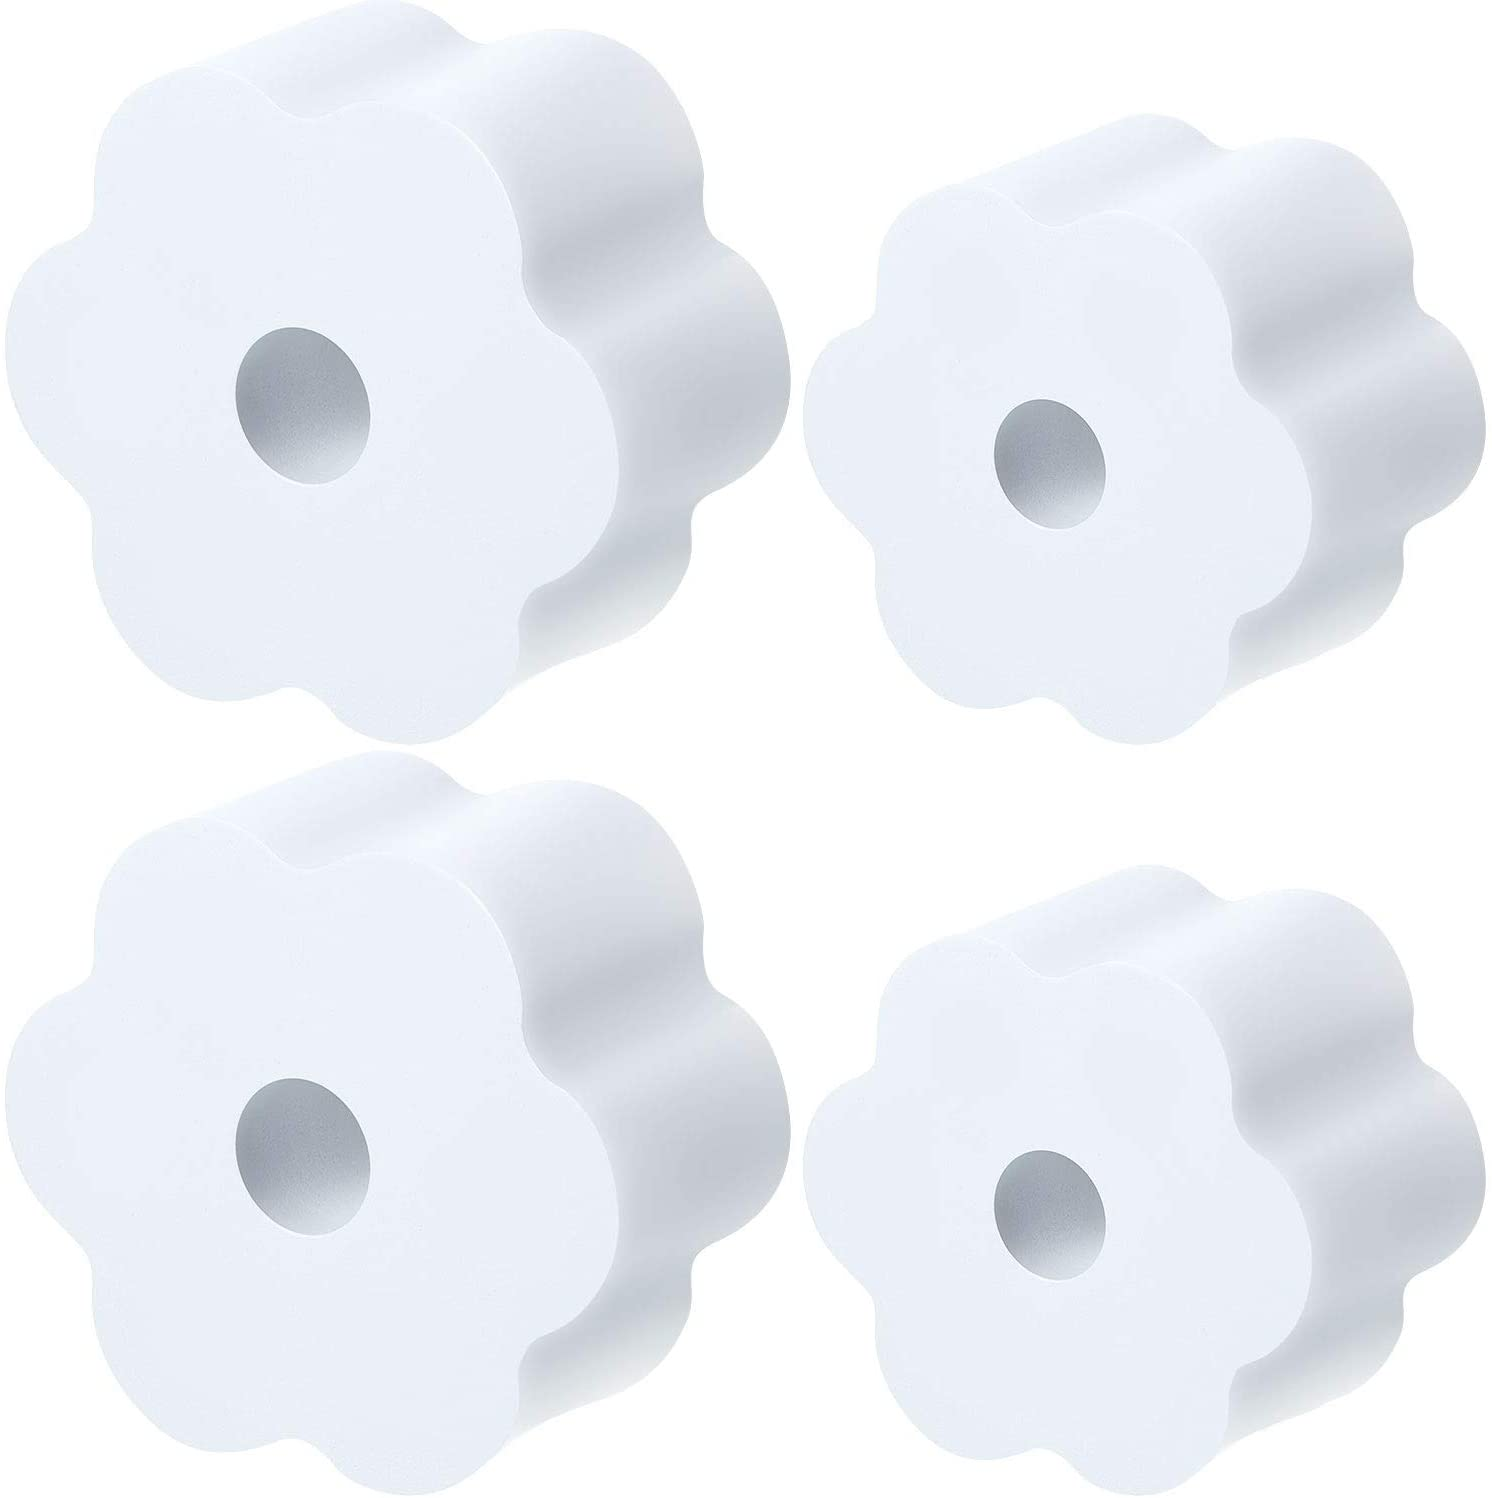 Cup Turner Foam Set, 4 Pieces Tumbler Foam for 1/2 Inch PVC Pipe, Tumbler Spinner Foams Fit 30 oz 20 oz 10 oz Tumbler Bottles Cups (White)